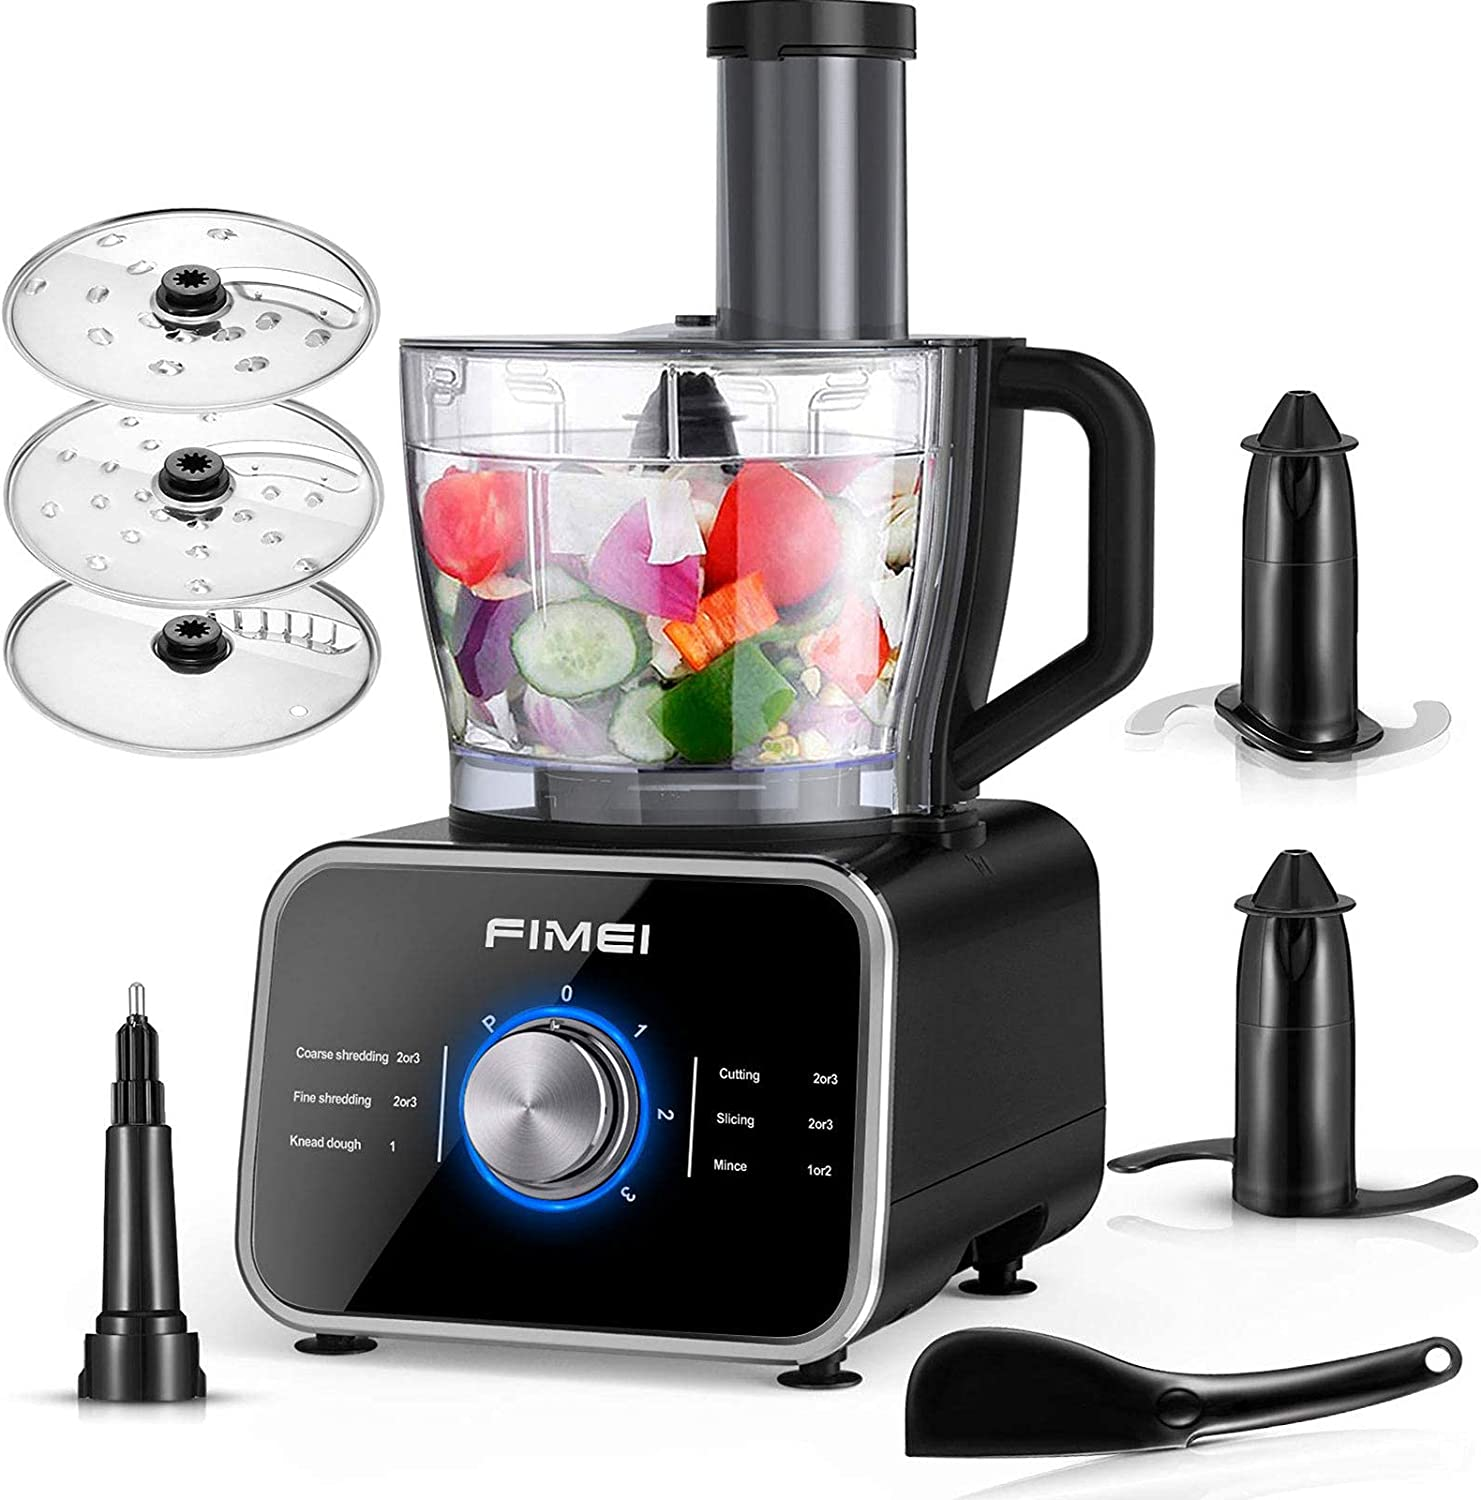 Food Processor FIMEI 12 Cup Multifunctional Food Processor- Chopper, Mixer, Knead Dough Blade, Cutting, Shredding, Slicing Attachments and 3.2L Bowl, 3 Speeds Plus Pulse, Reinforced Glass Panel (Renewed)